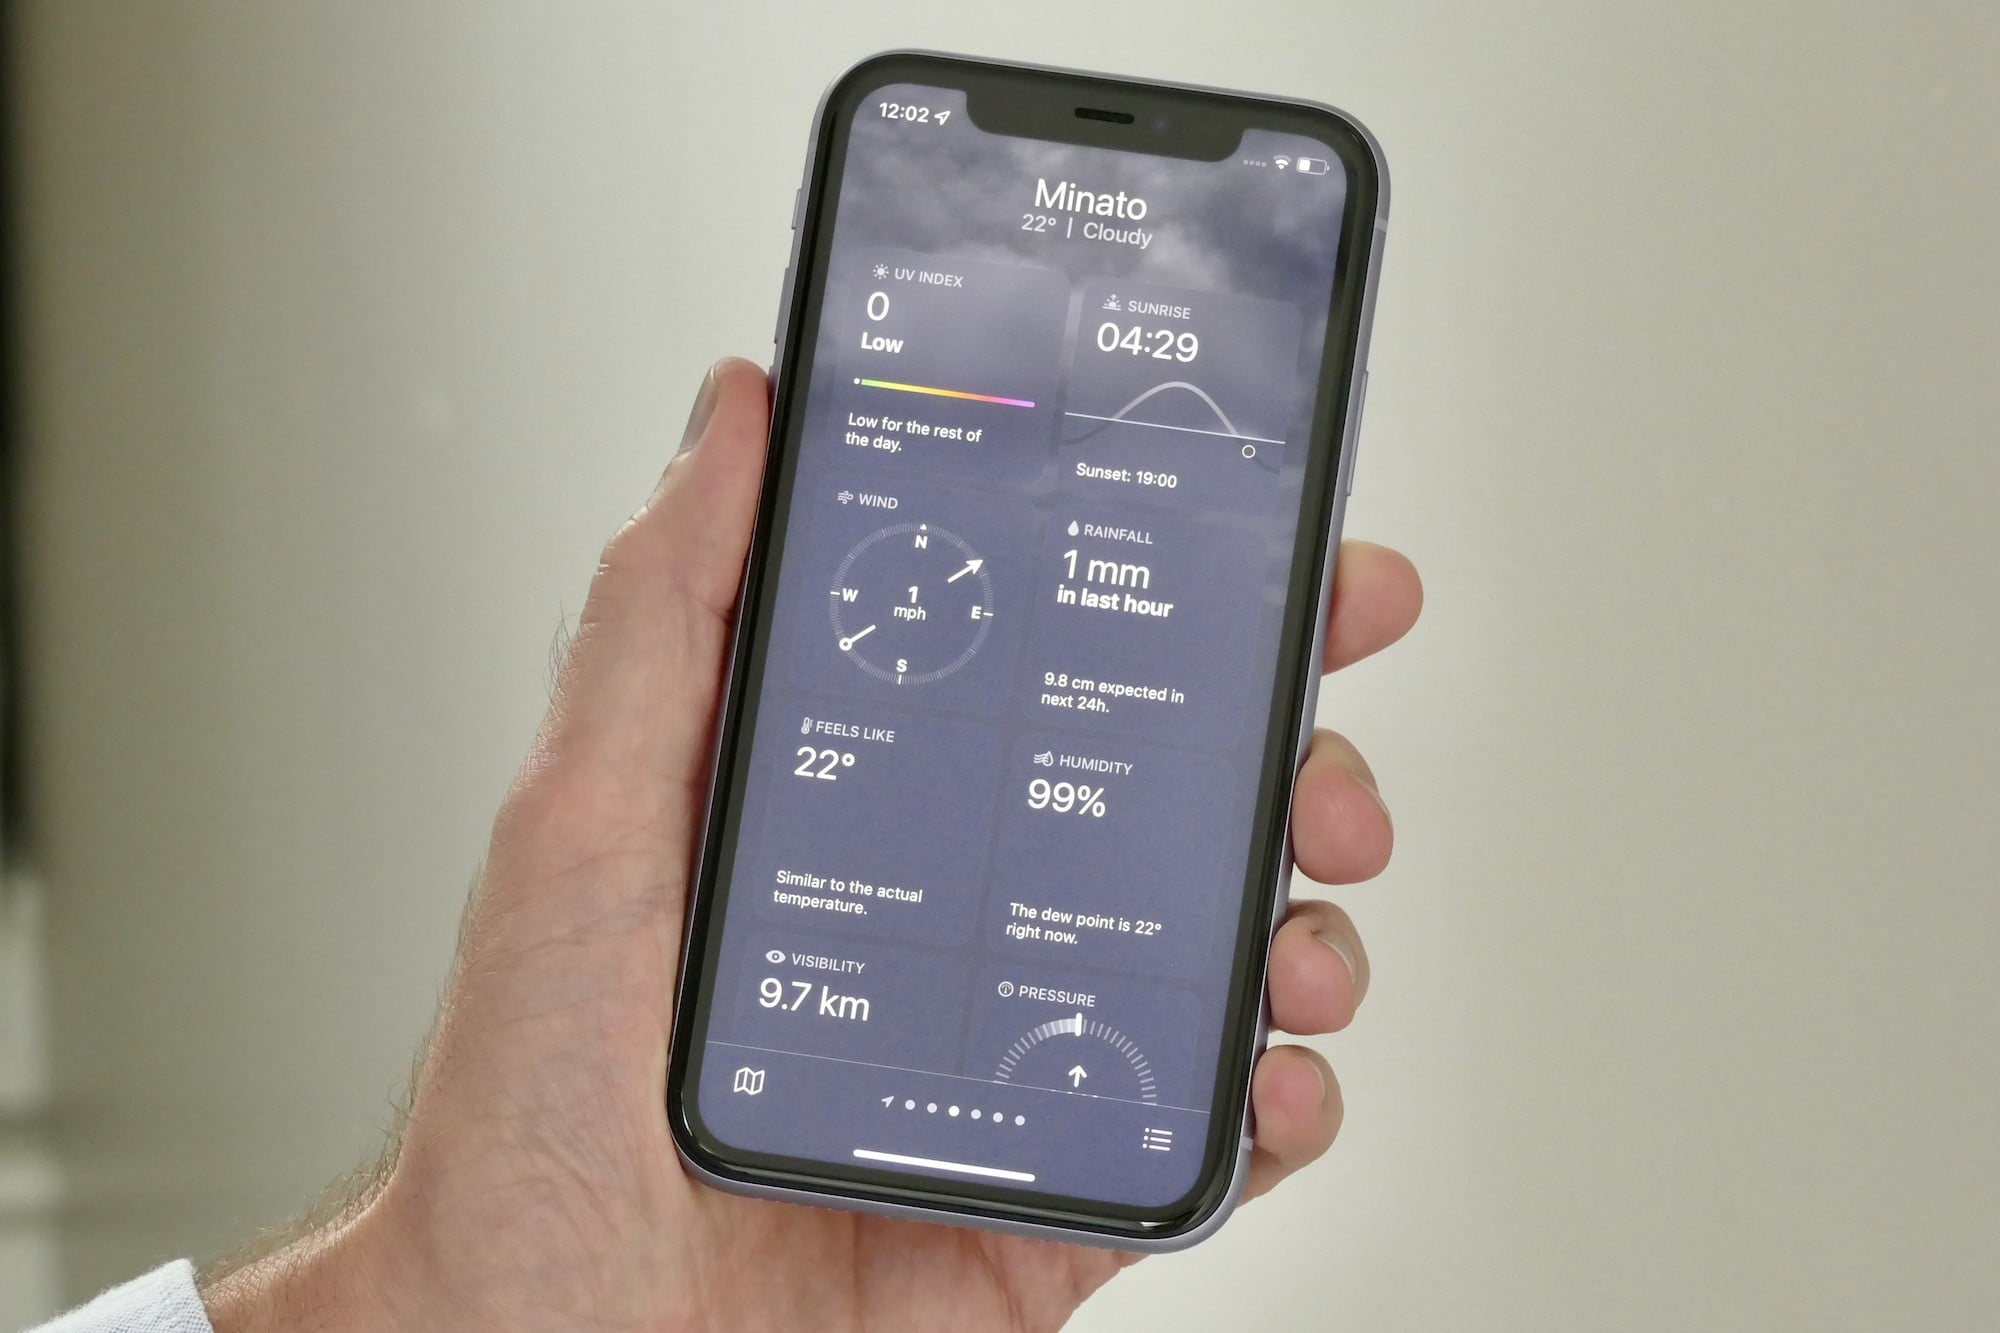 Weather details showing in iOS 15's weather app